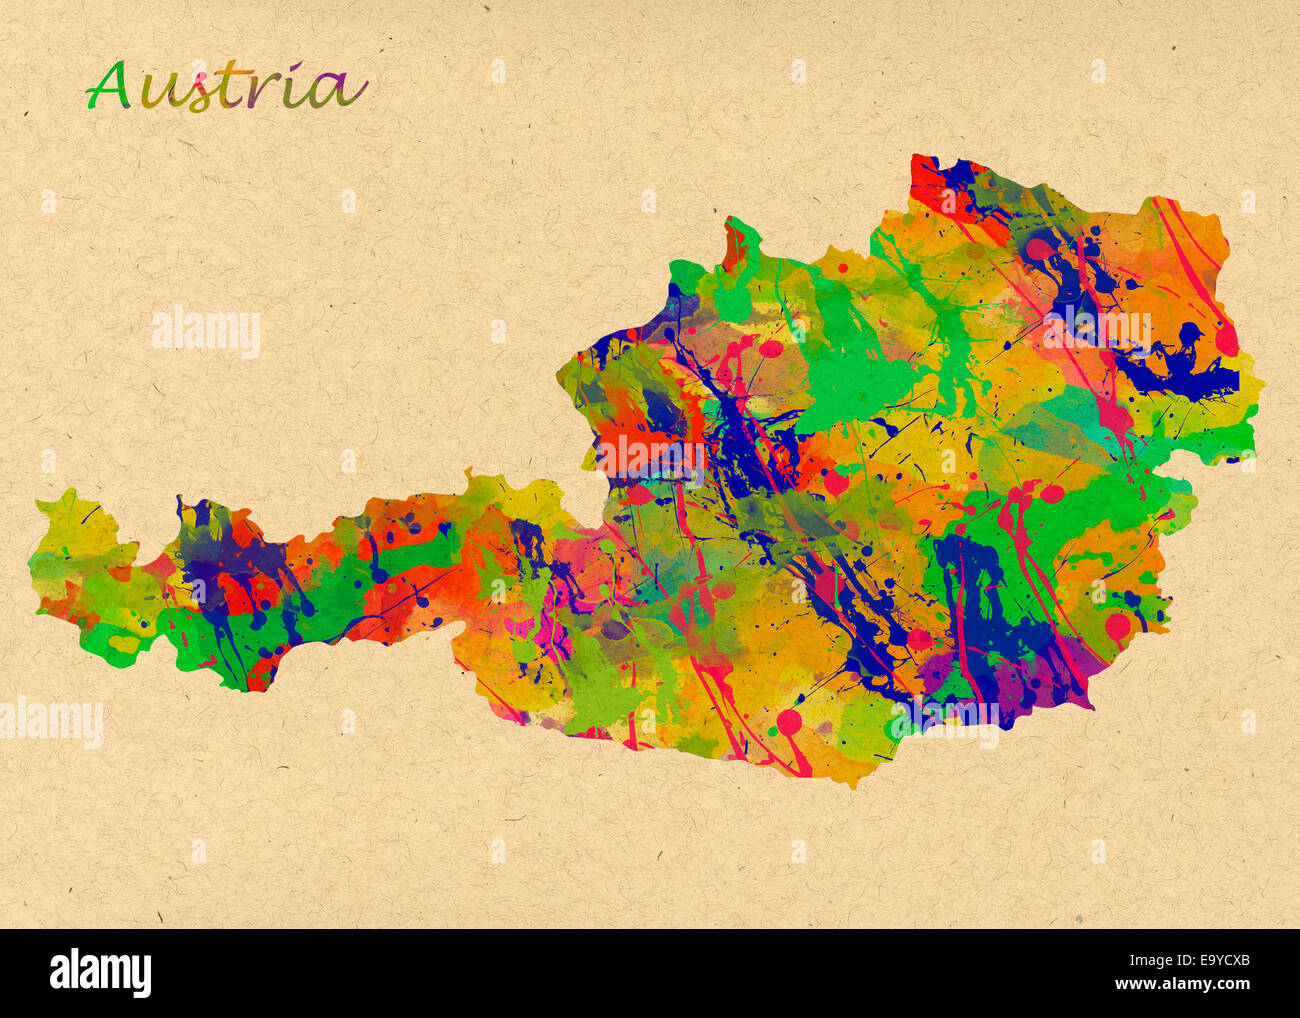 Austria Watercolor Map. Beautiful Wall Art / Home Decor Canvas ...